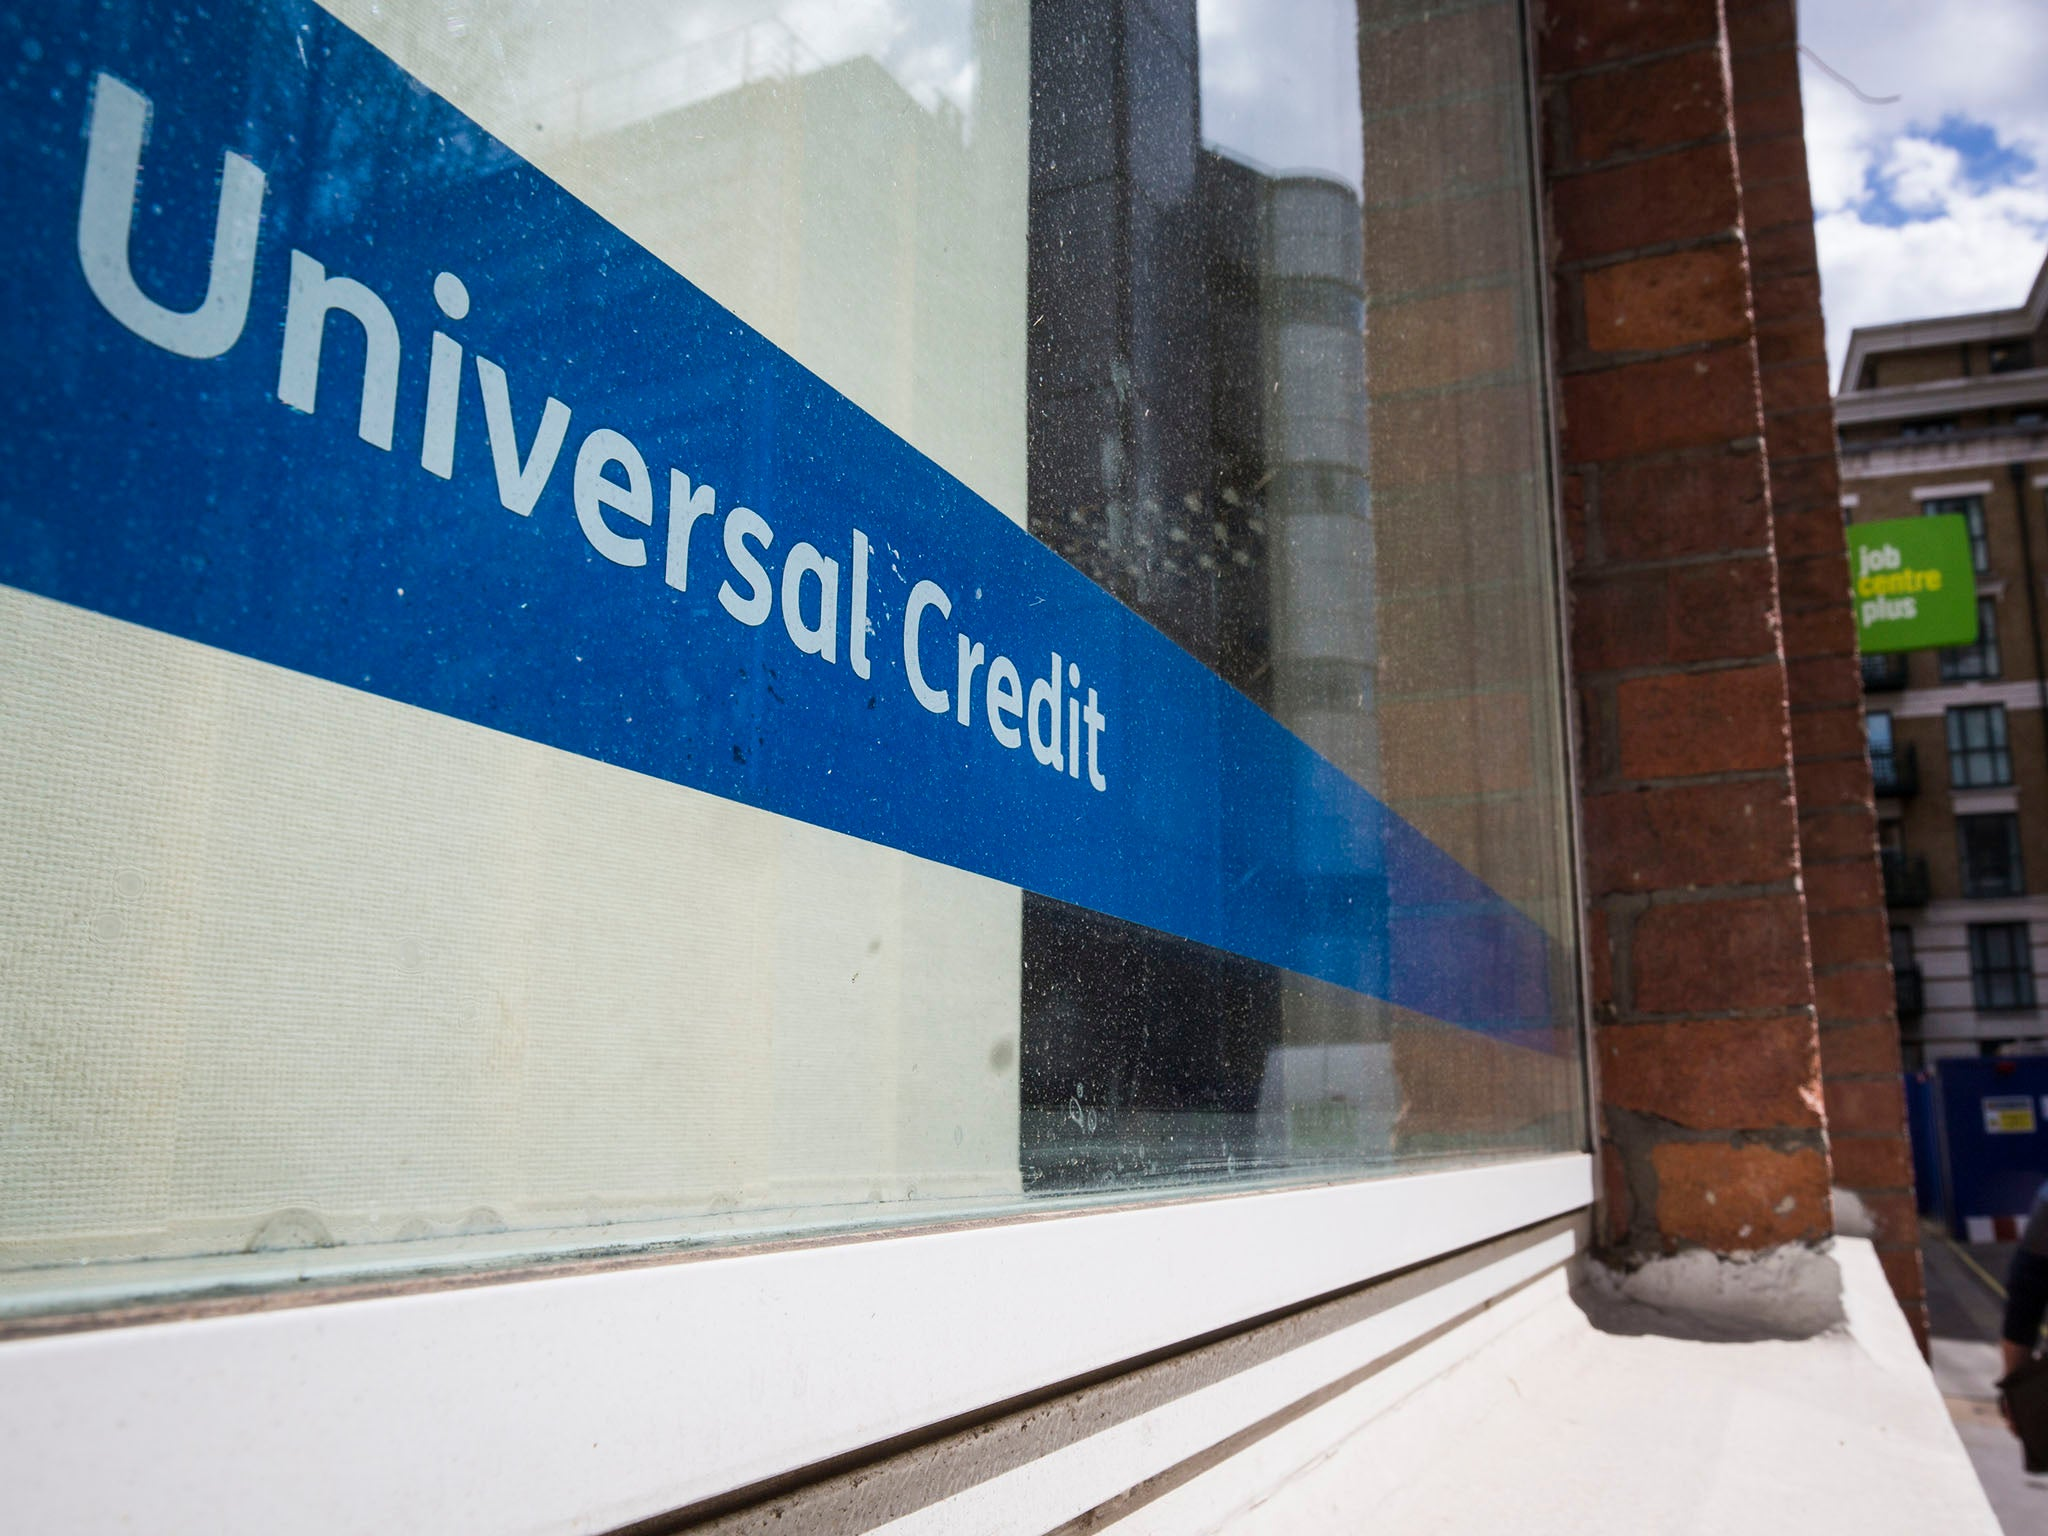 Samsclub Credit Login >> Universal credit claimants driven to consider suicide over ...